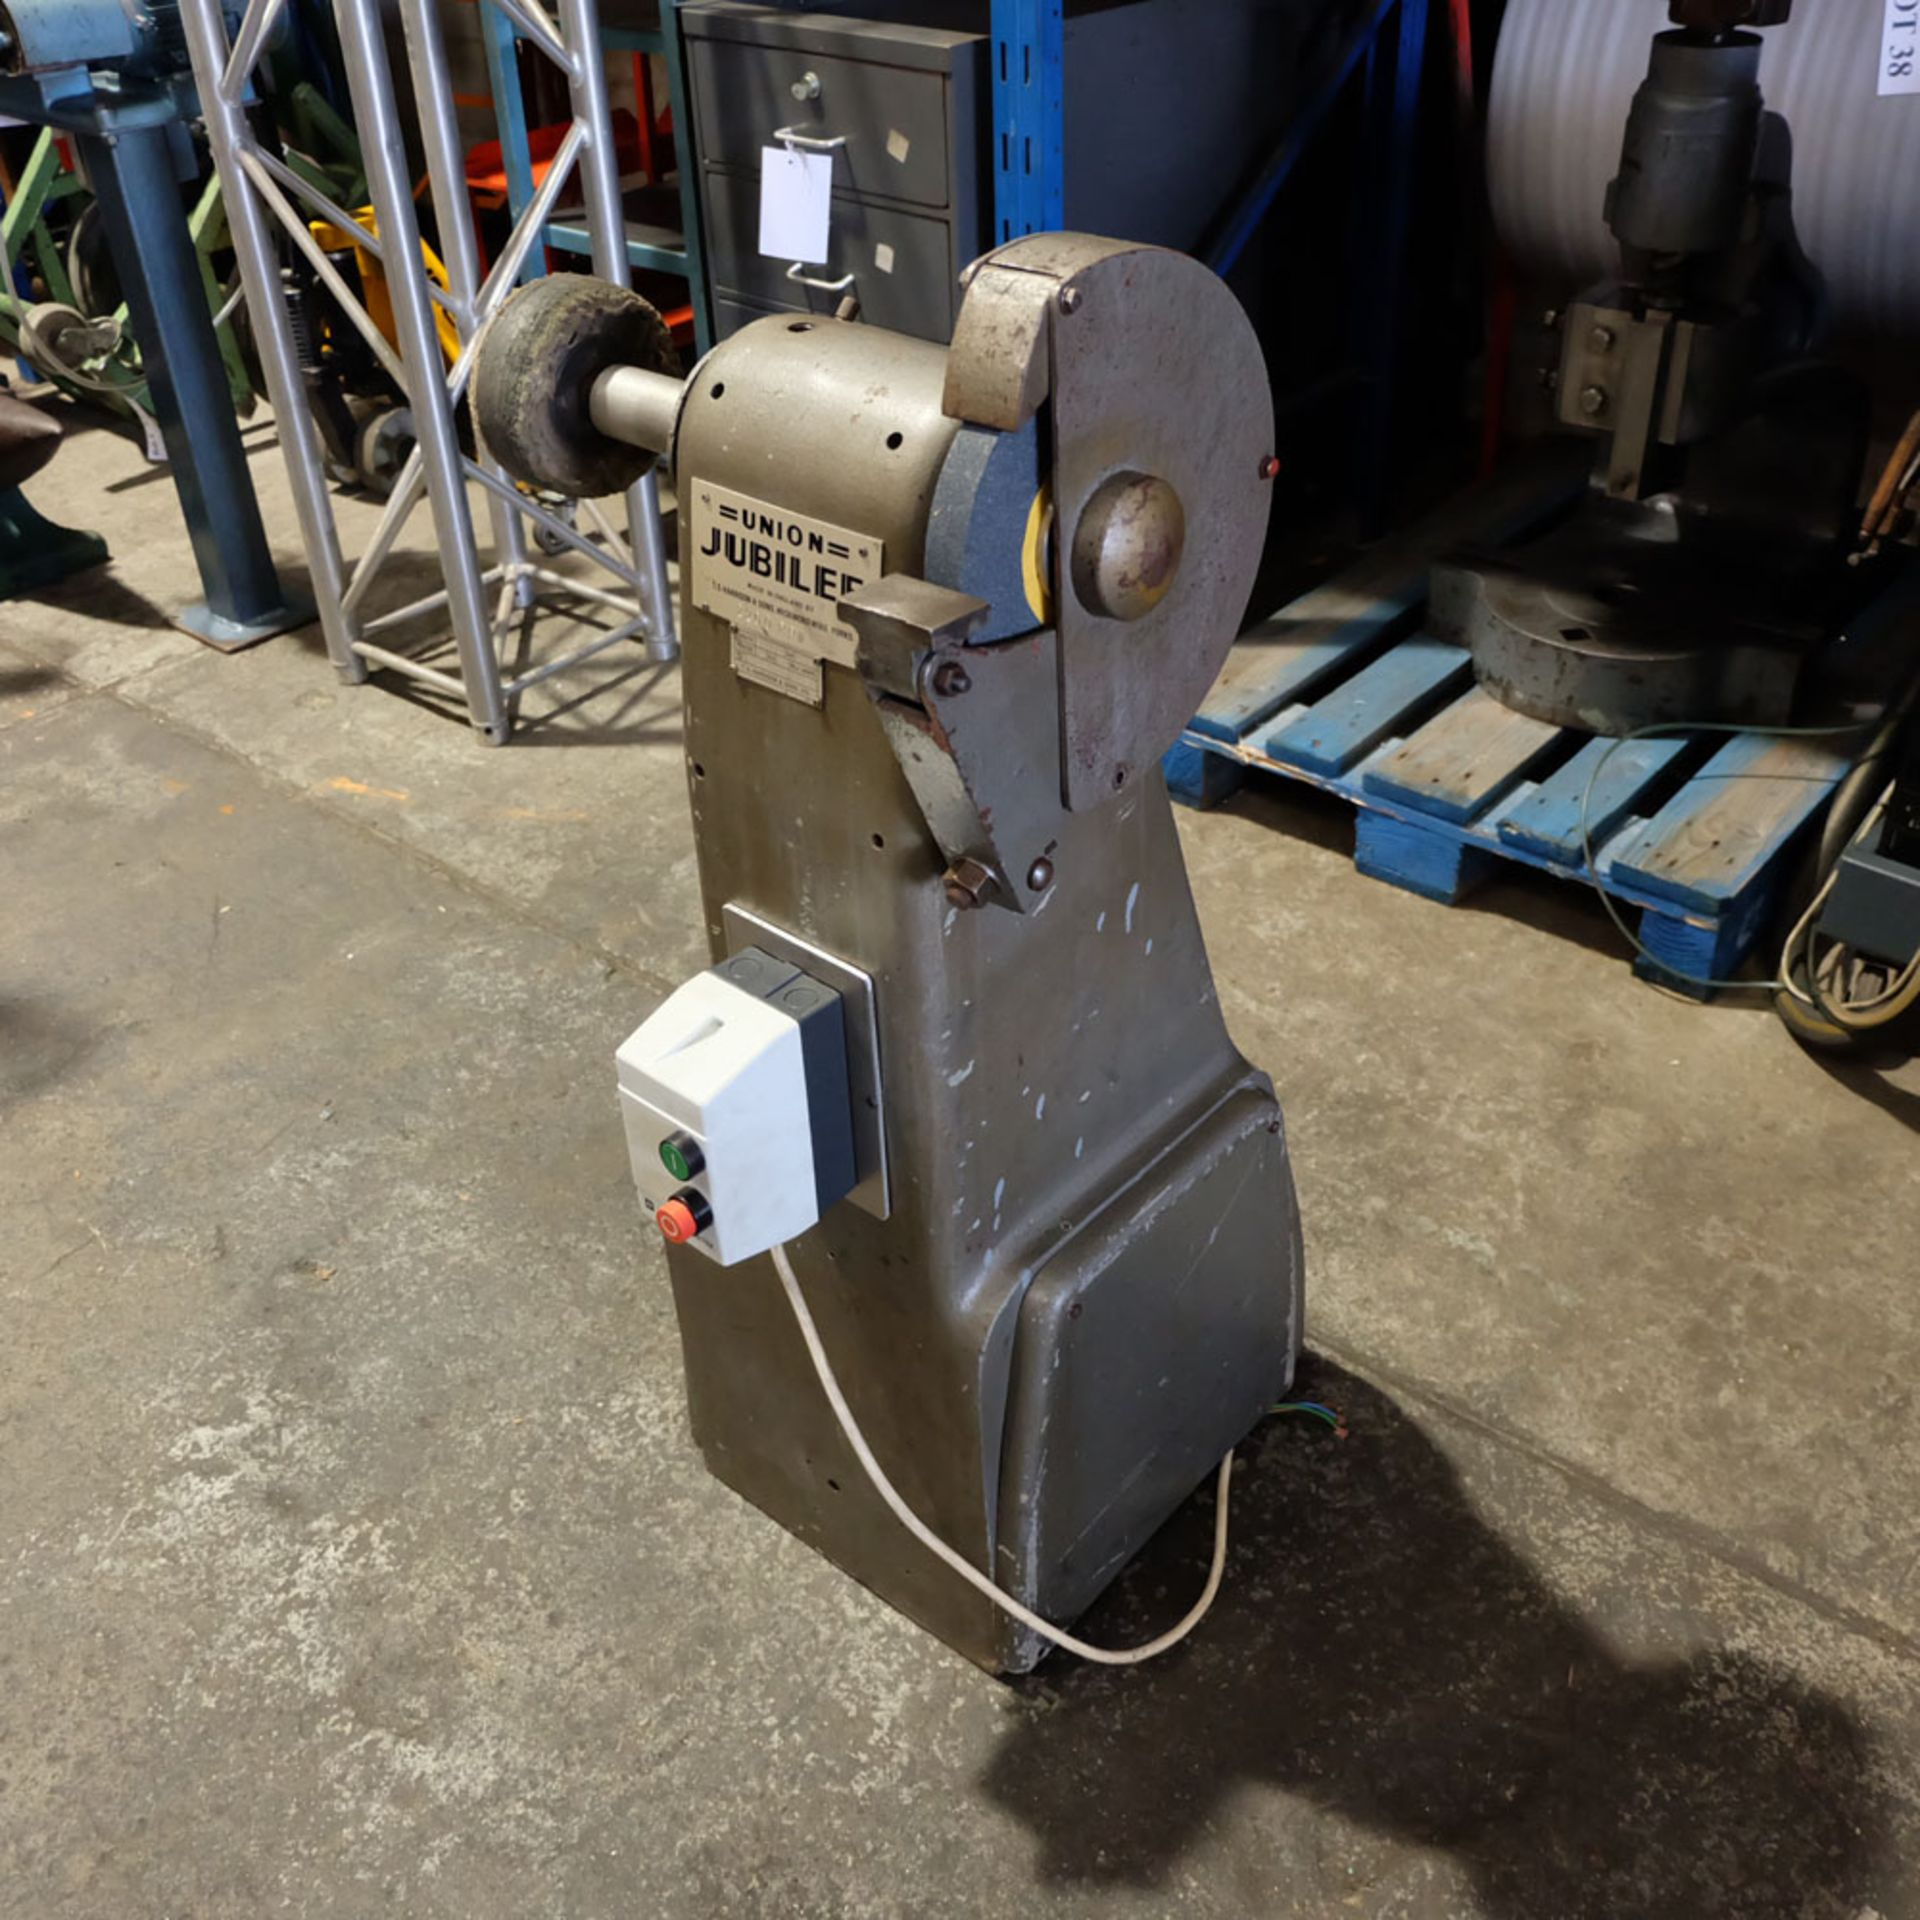 Union Jubilee Double Ended Pedestal Tool Grinding & Polishing Machine. Speed 2200rpm. - Image 3 of 6